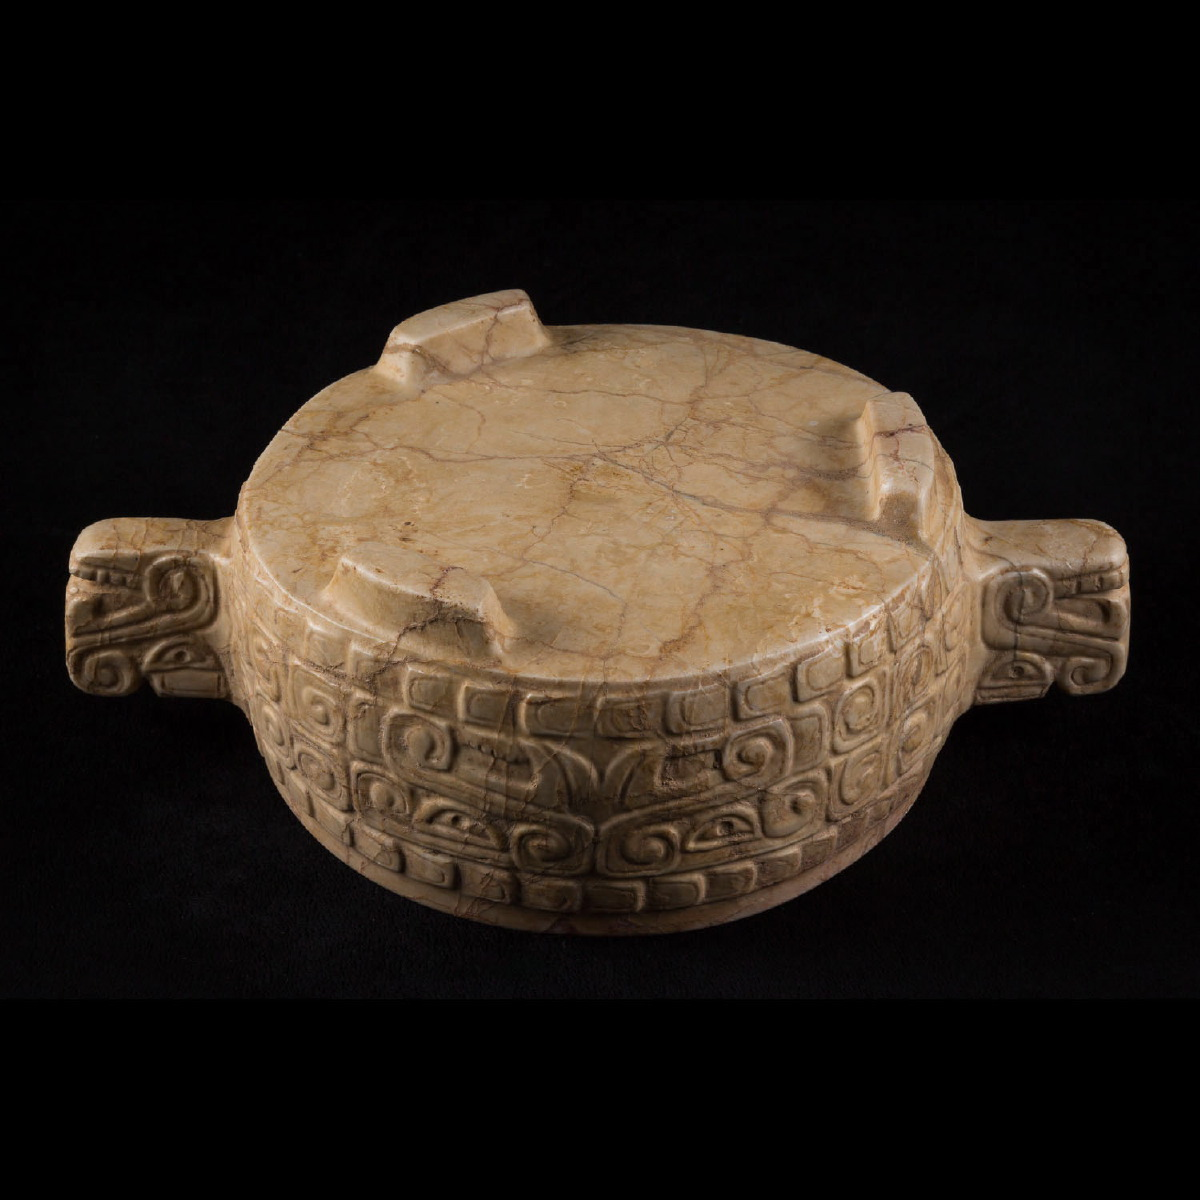 Photo of rare-maya-vessel-marble-ulua-valley-olmeques-kukulan-fetaher-snake-galerie-golocnda-specialist-musuem-quality-atrcheology